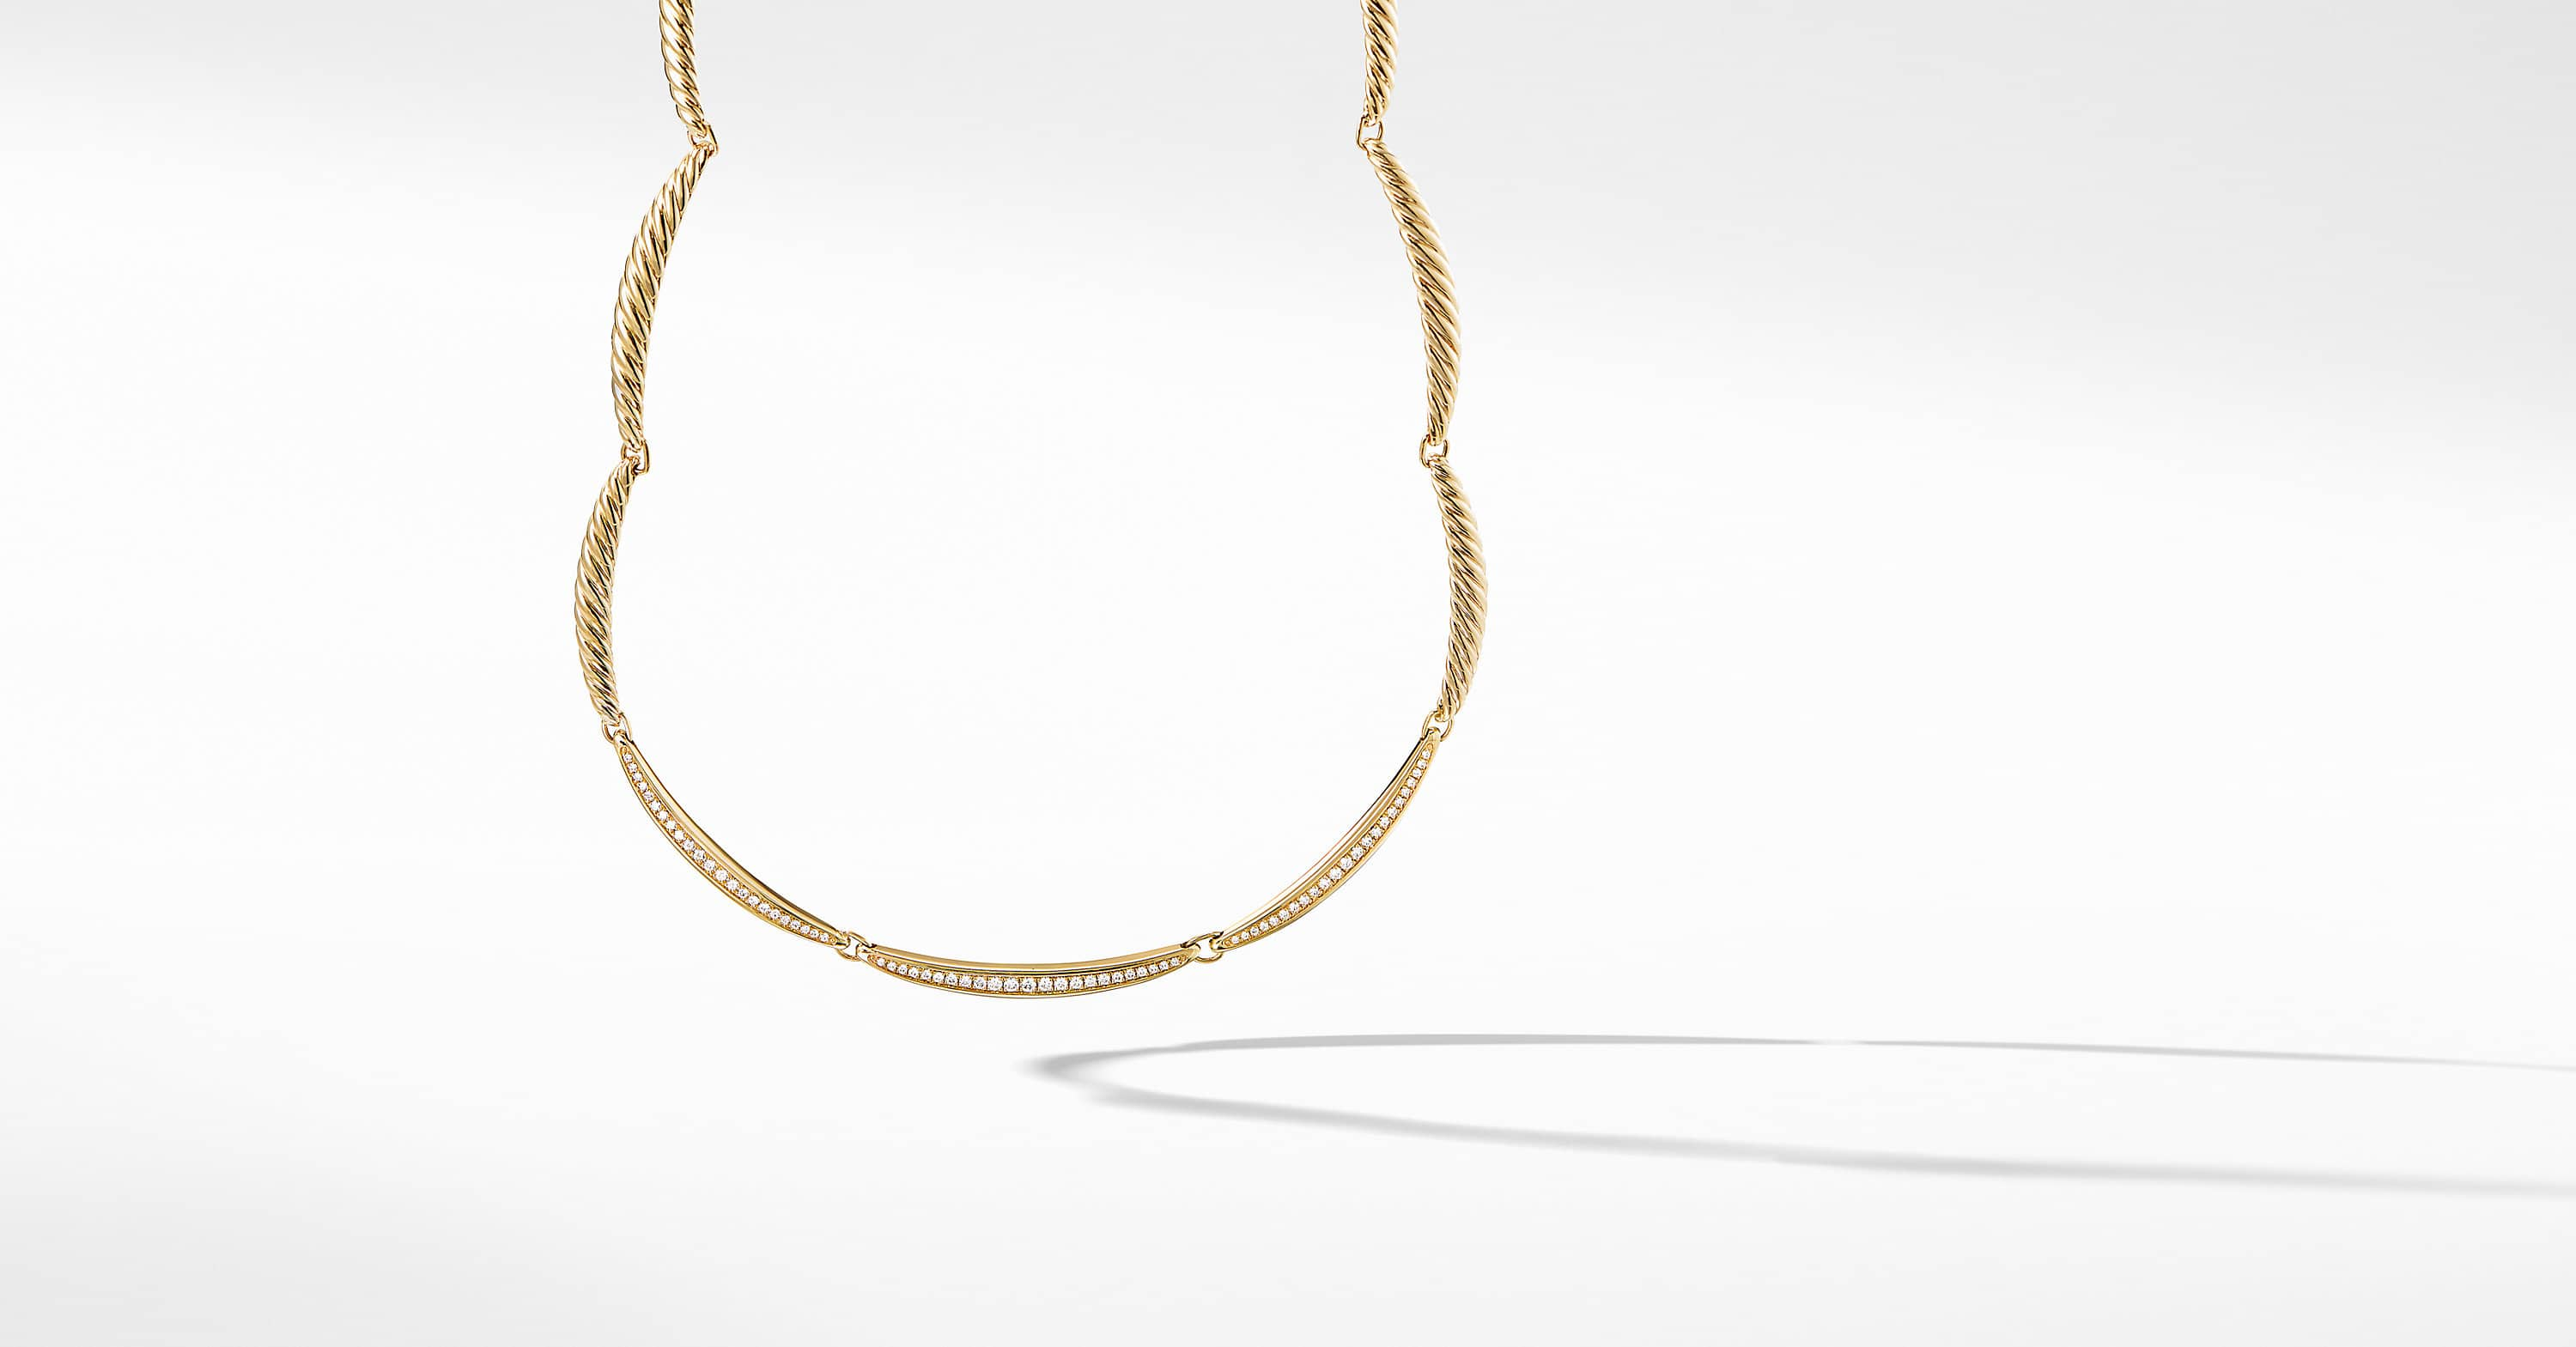 Tides Single Row Necklace in 18K Yellow Gold with Diamonds